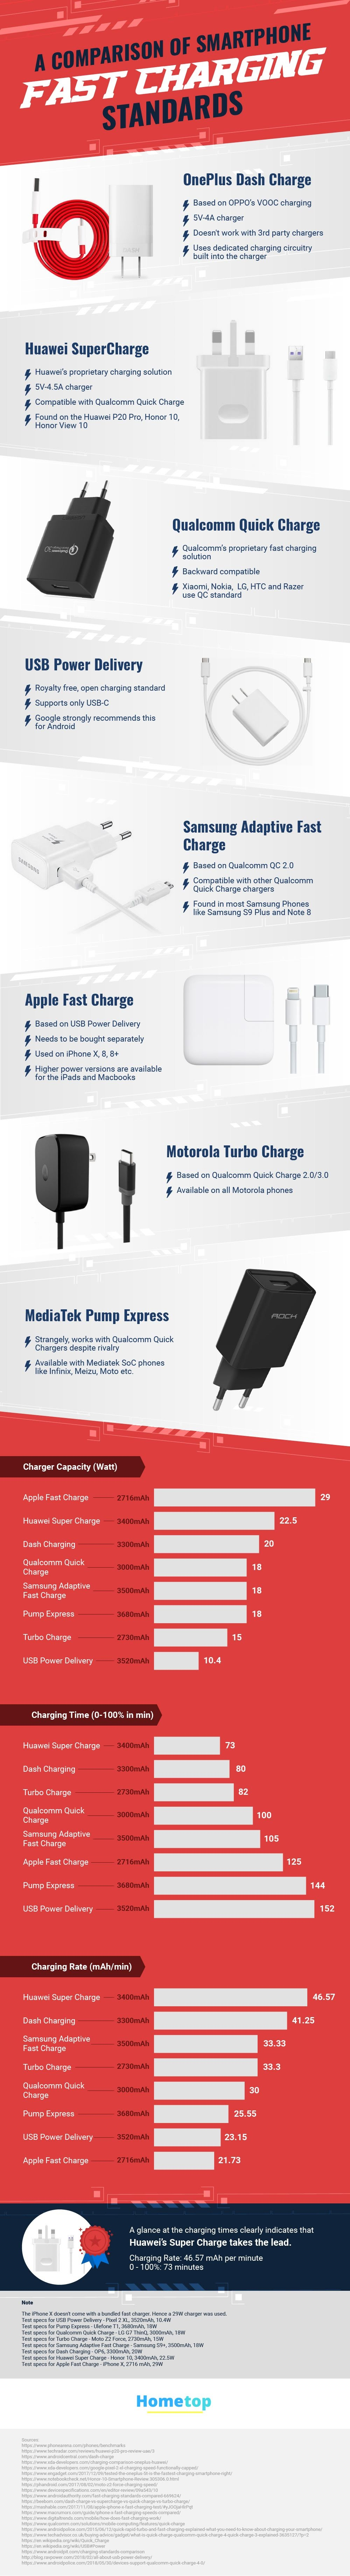 A Comparison Of Smartphone Fast Charging Standards